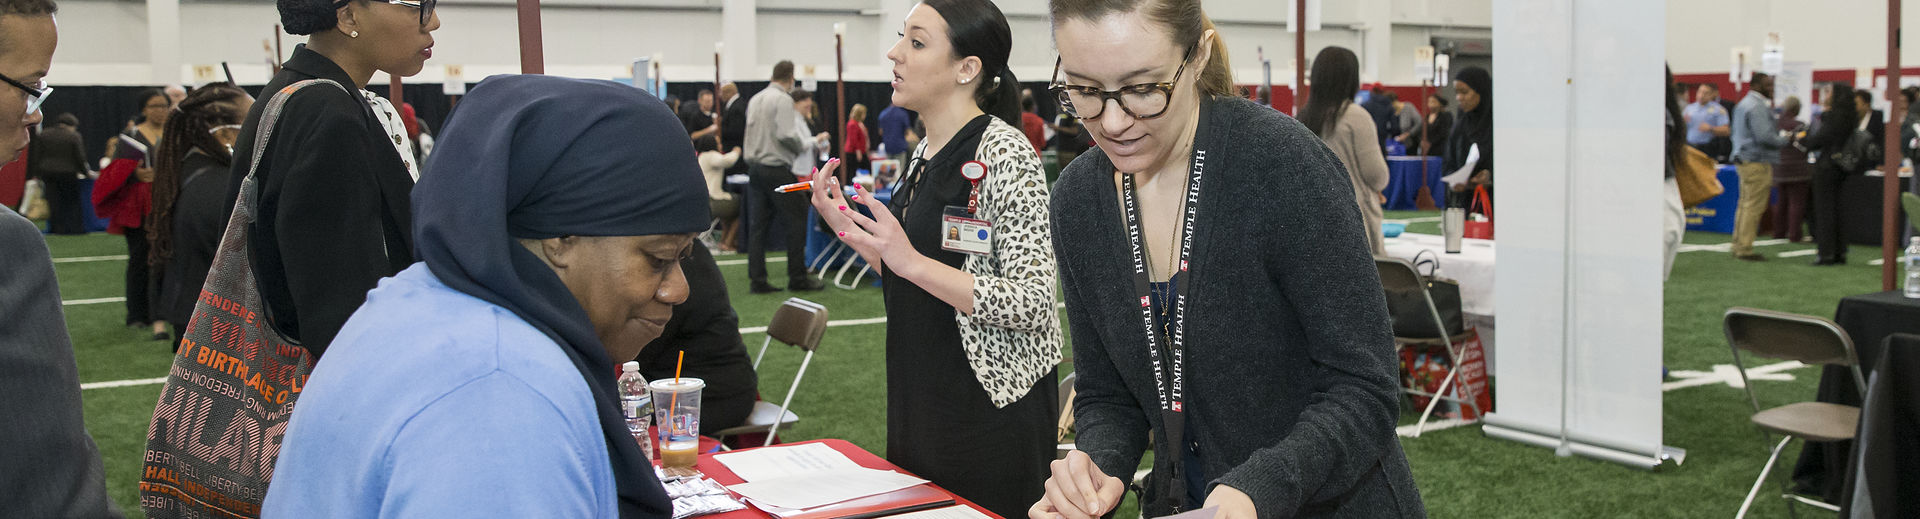 Two women speak to each other at a Temple job fair table.